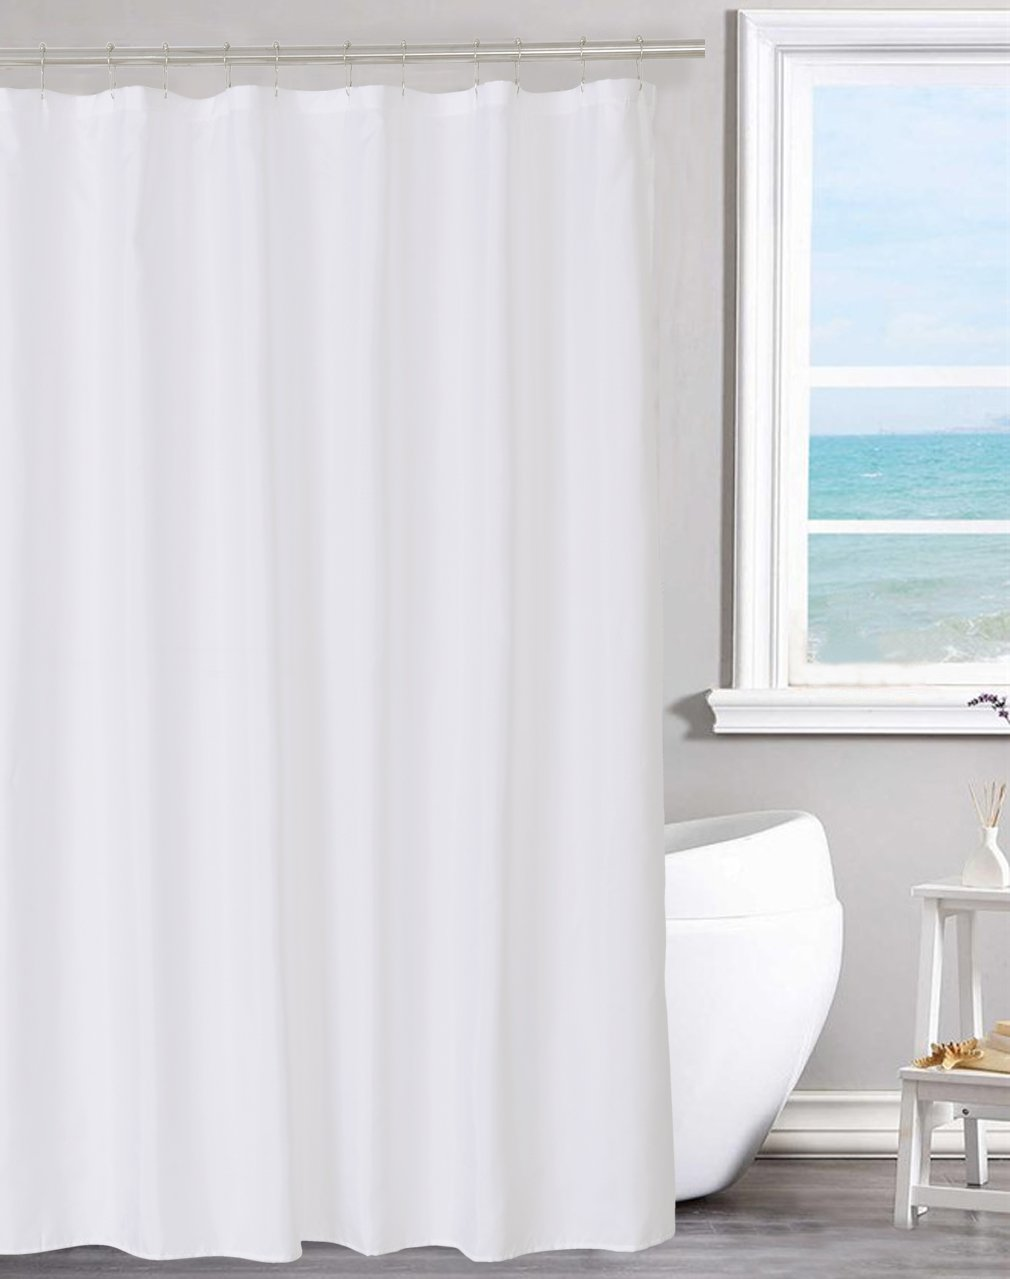 The 5 Best Shower Curtains: Reviews & Buying Guide 12